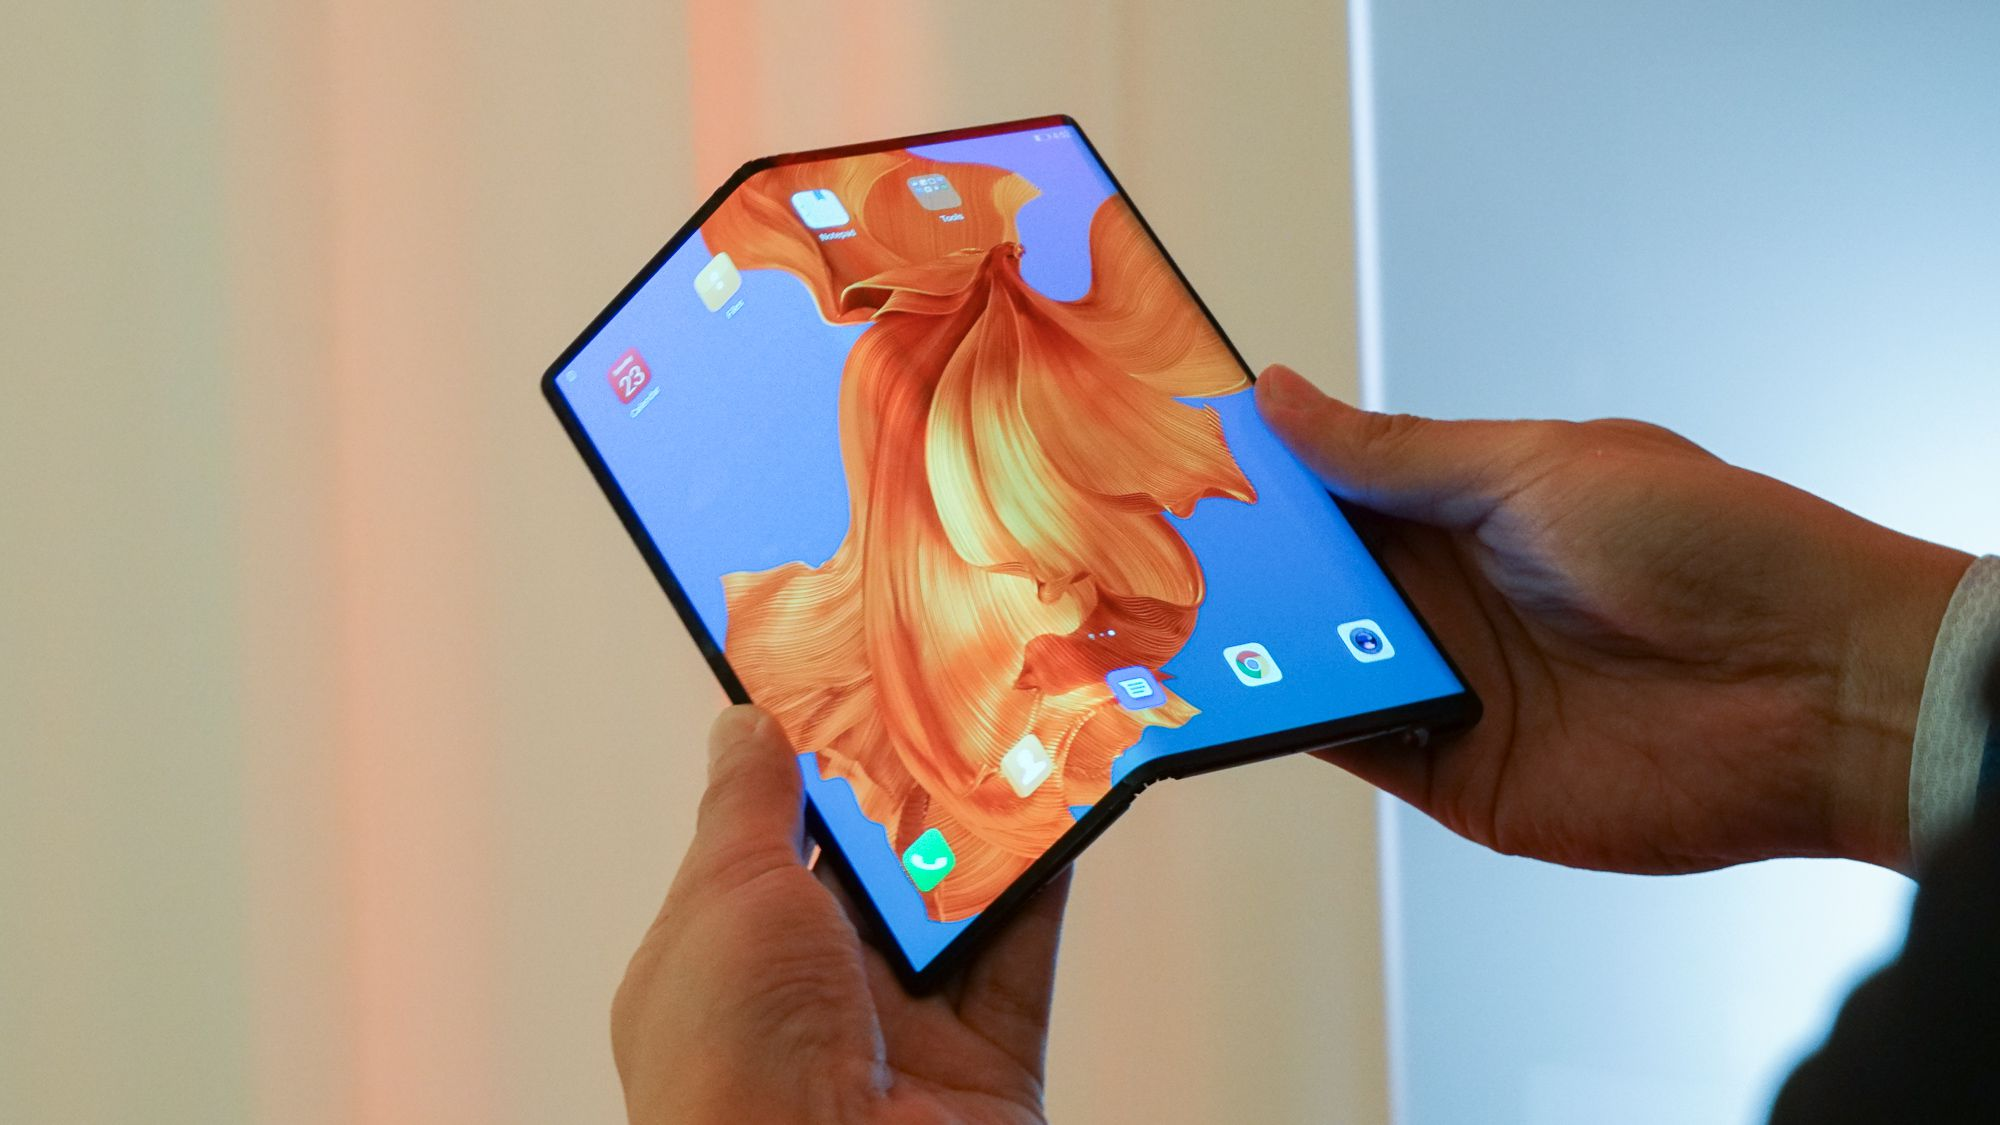 The first foldable smartphone in the market.